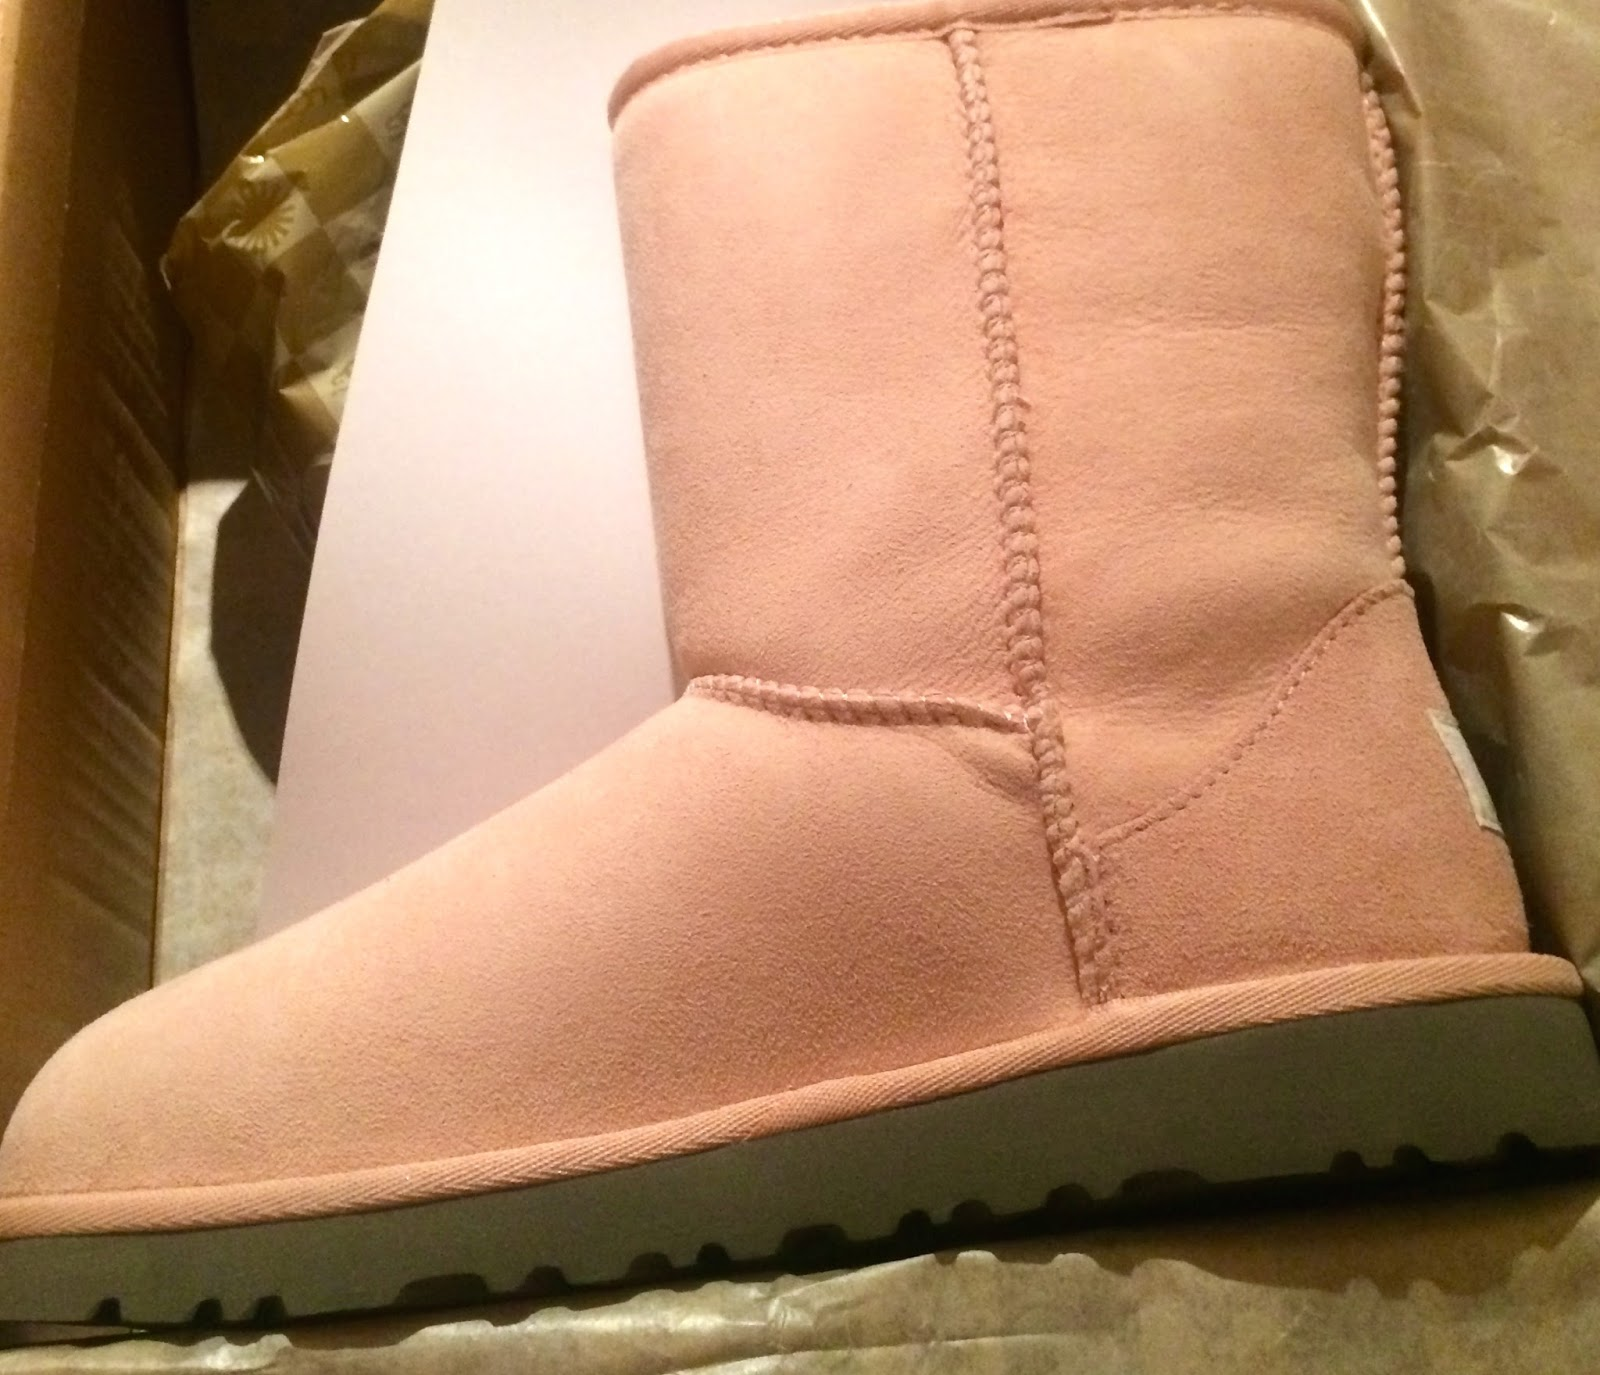 dbc9ab716ae My Love For UGG Australia - ONLY IN CHANELLE'S WORLD